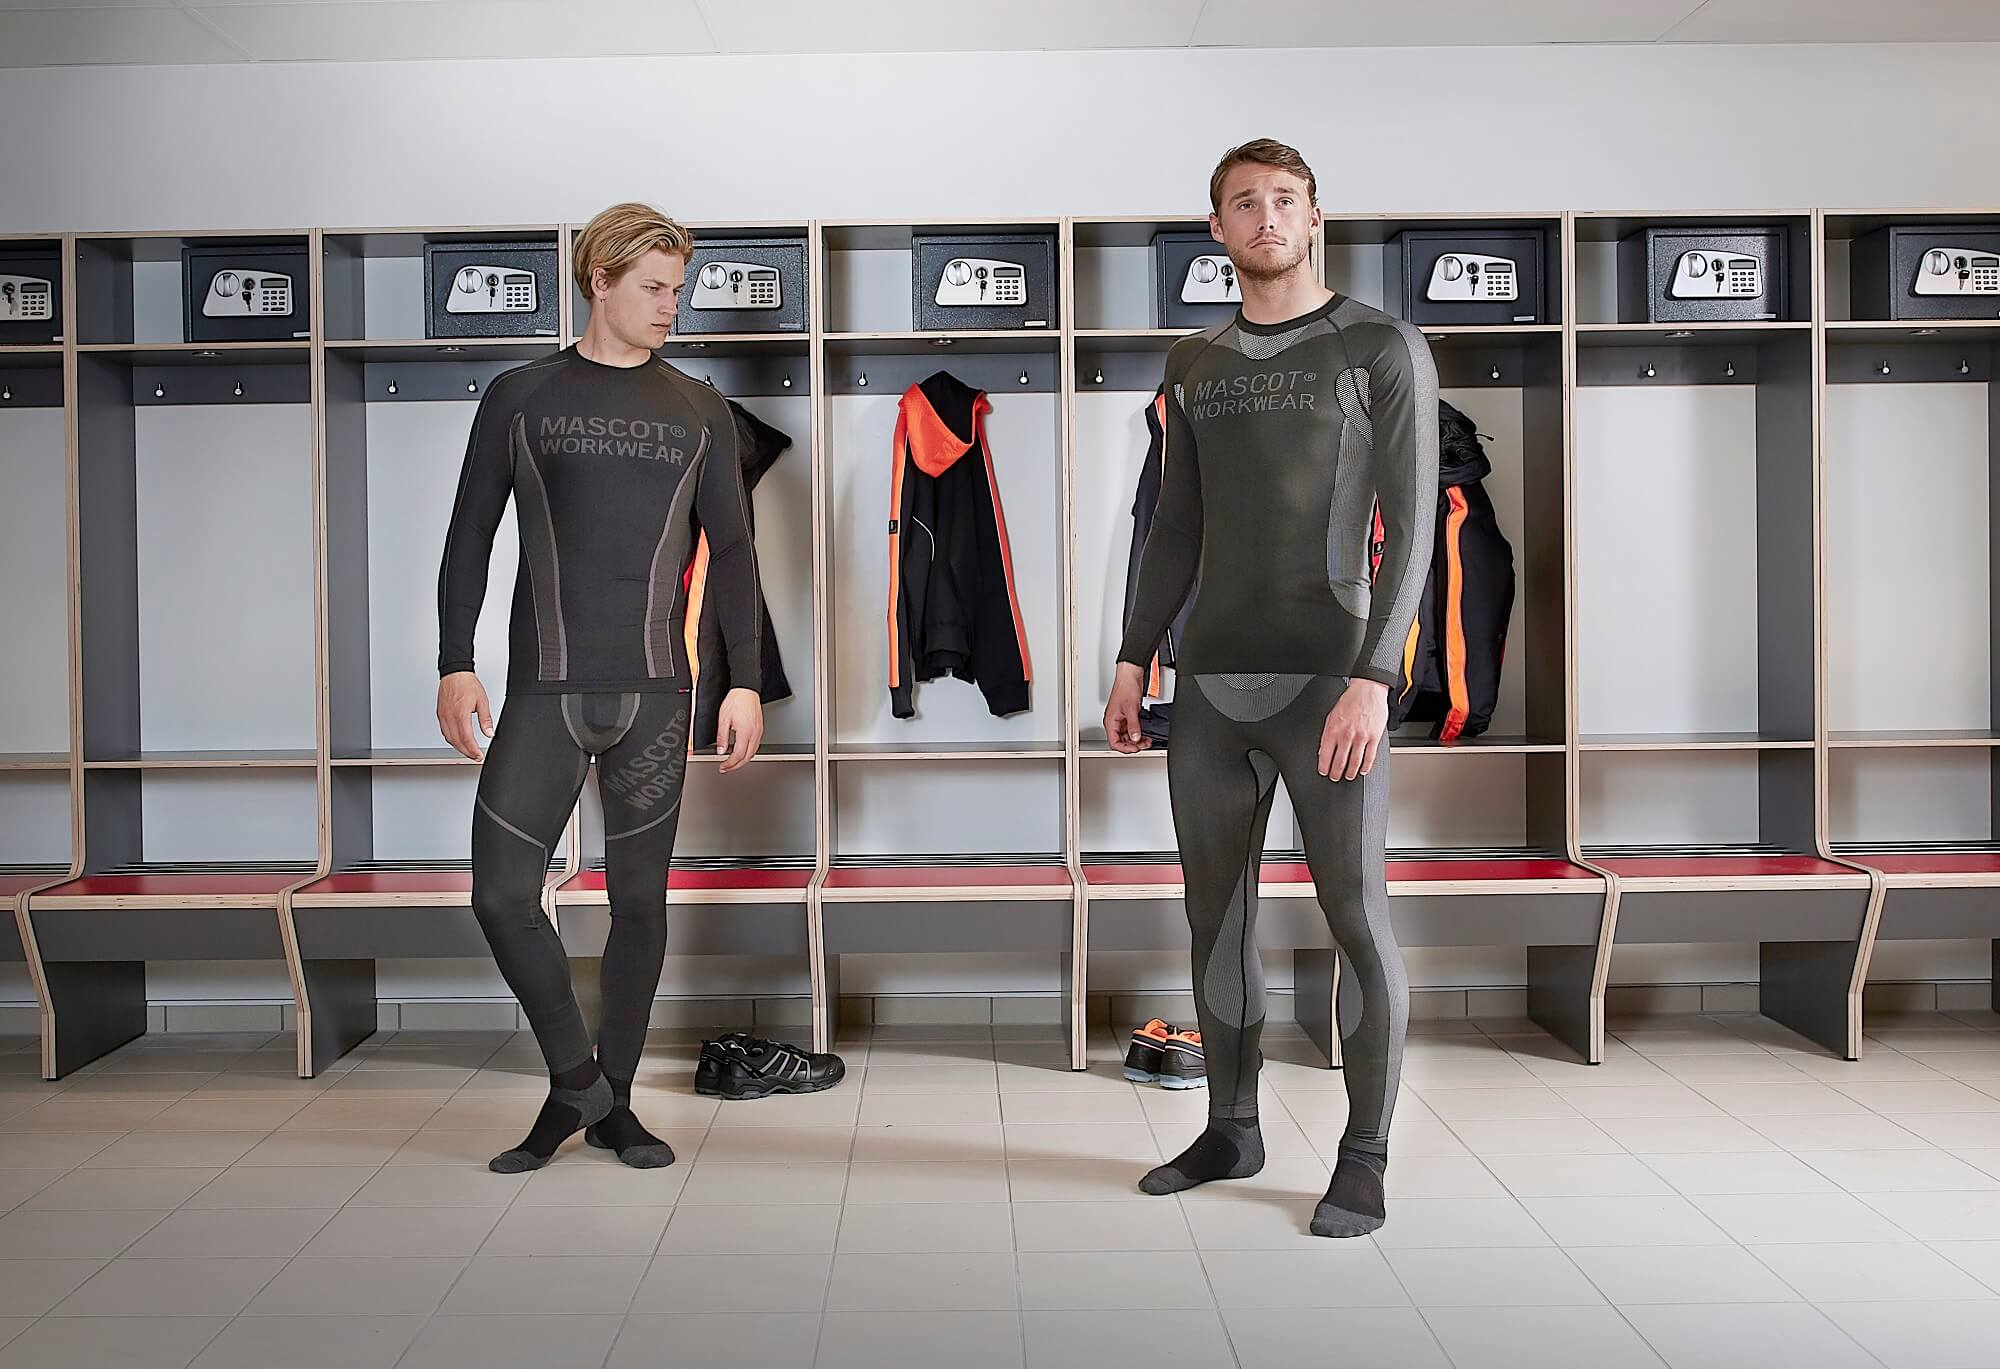 Functional Under Shirt & Functional Under Pants - Thermal Underwear